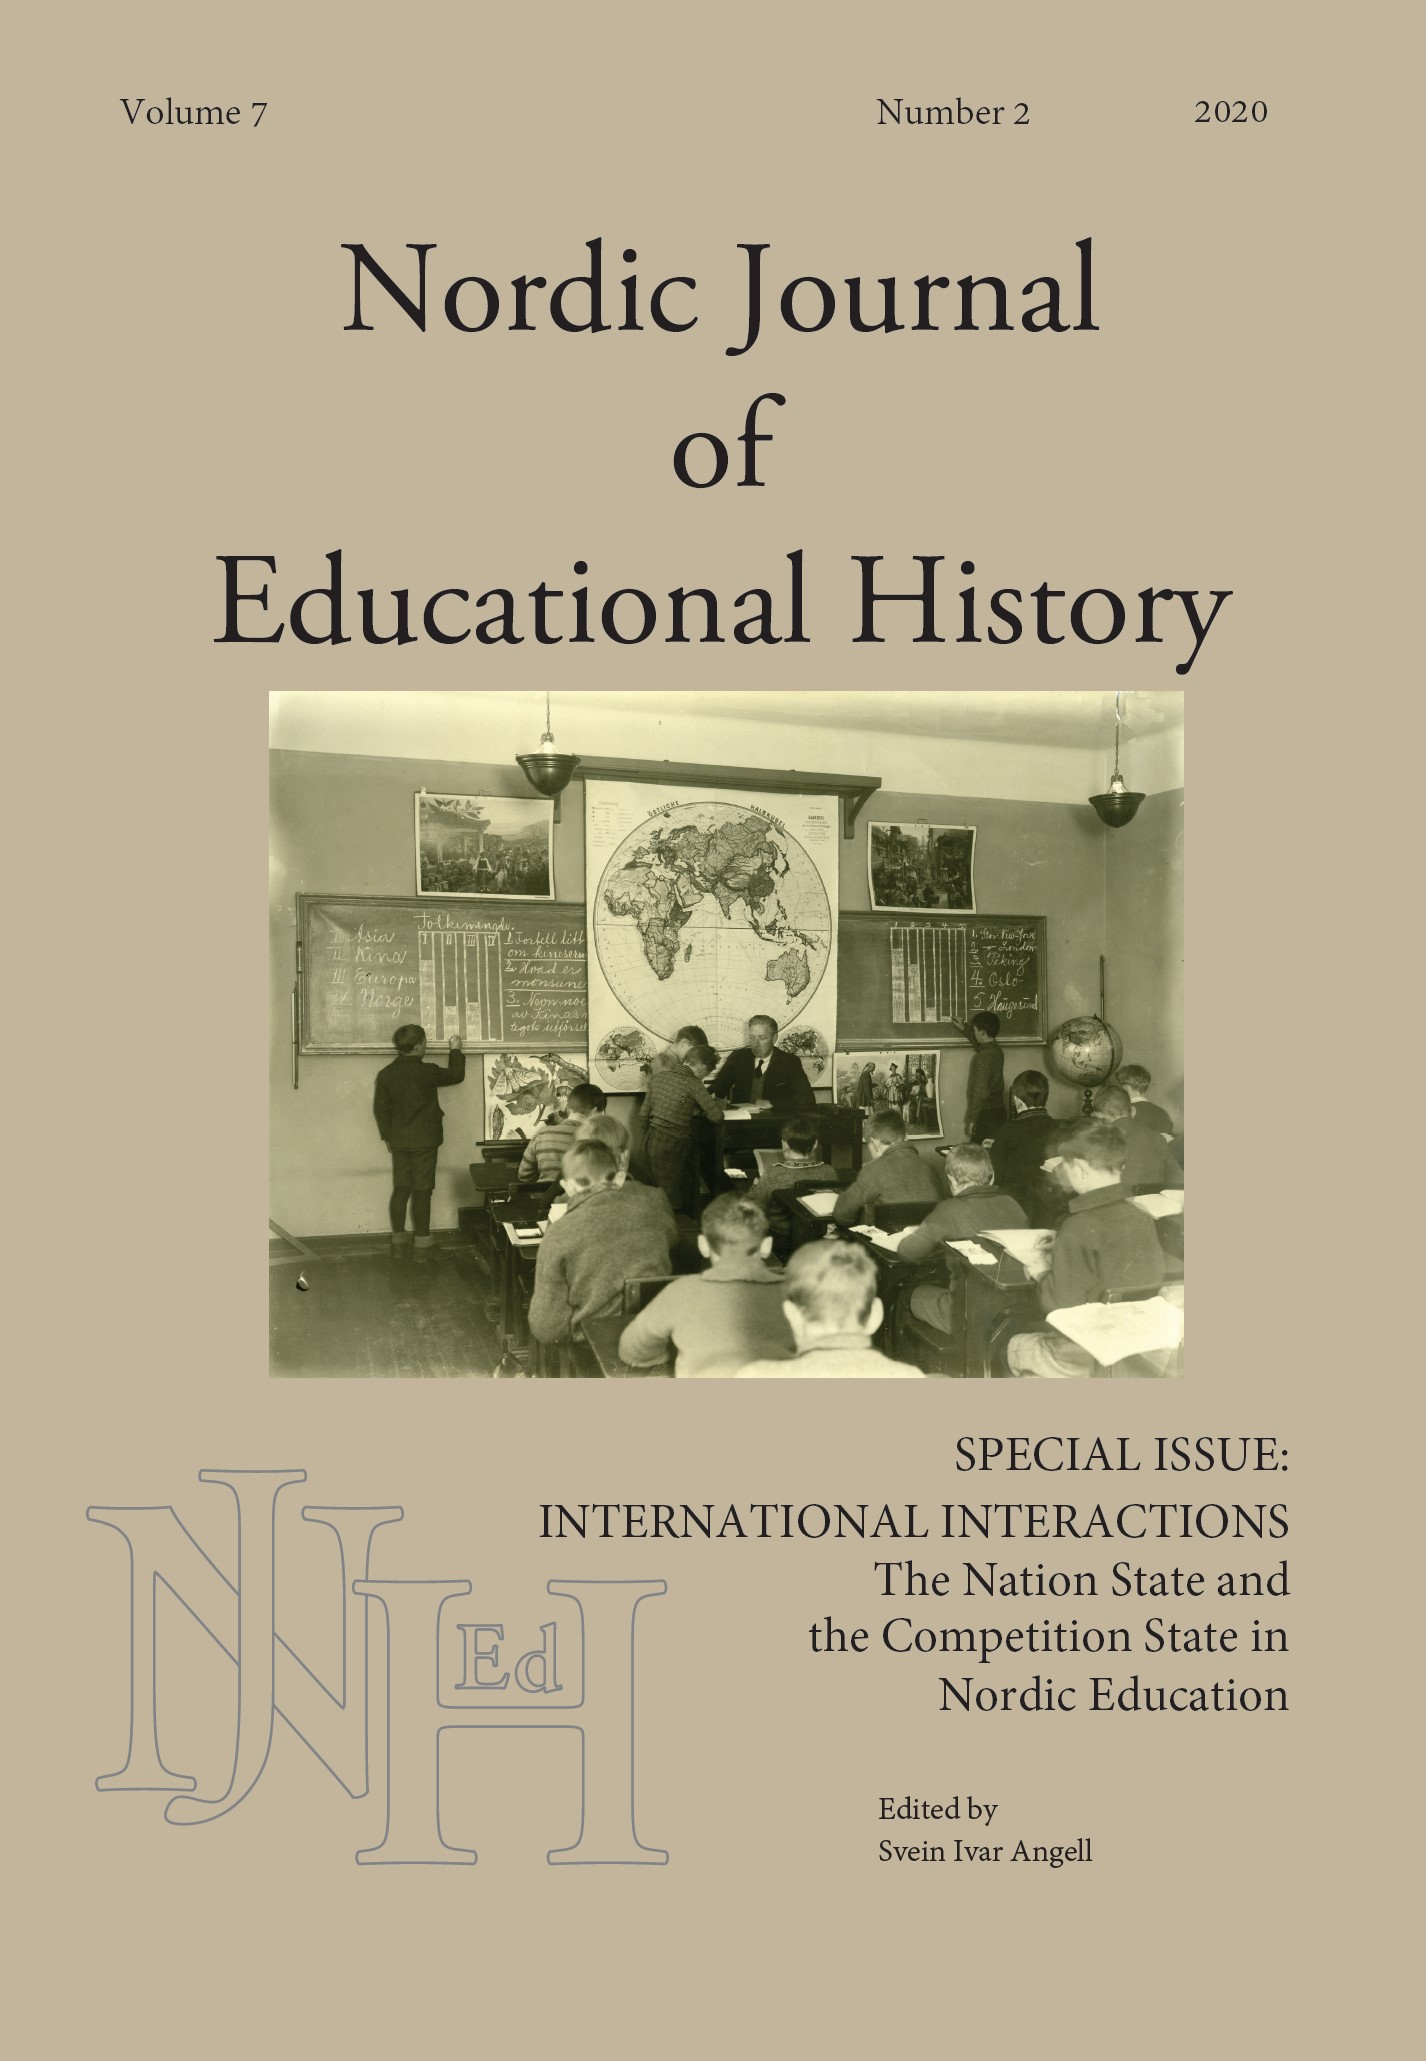 View Vol. 7 No. 2 (2020): Special Issue: International Interactions – the Nation State and the Competition State in Nordic Education